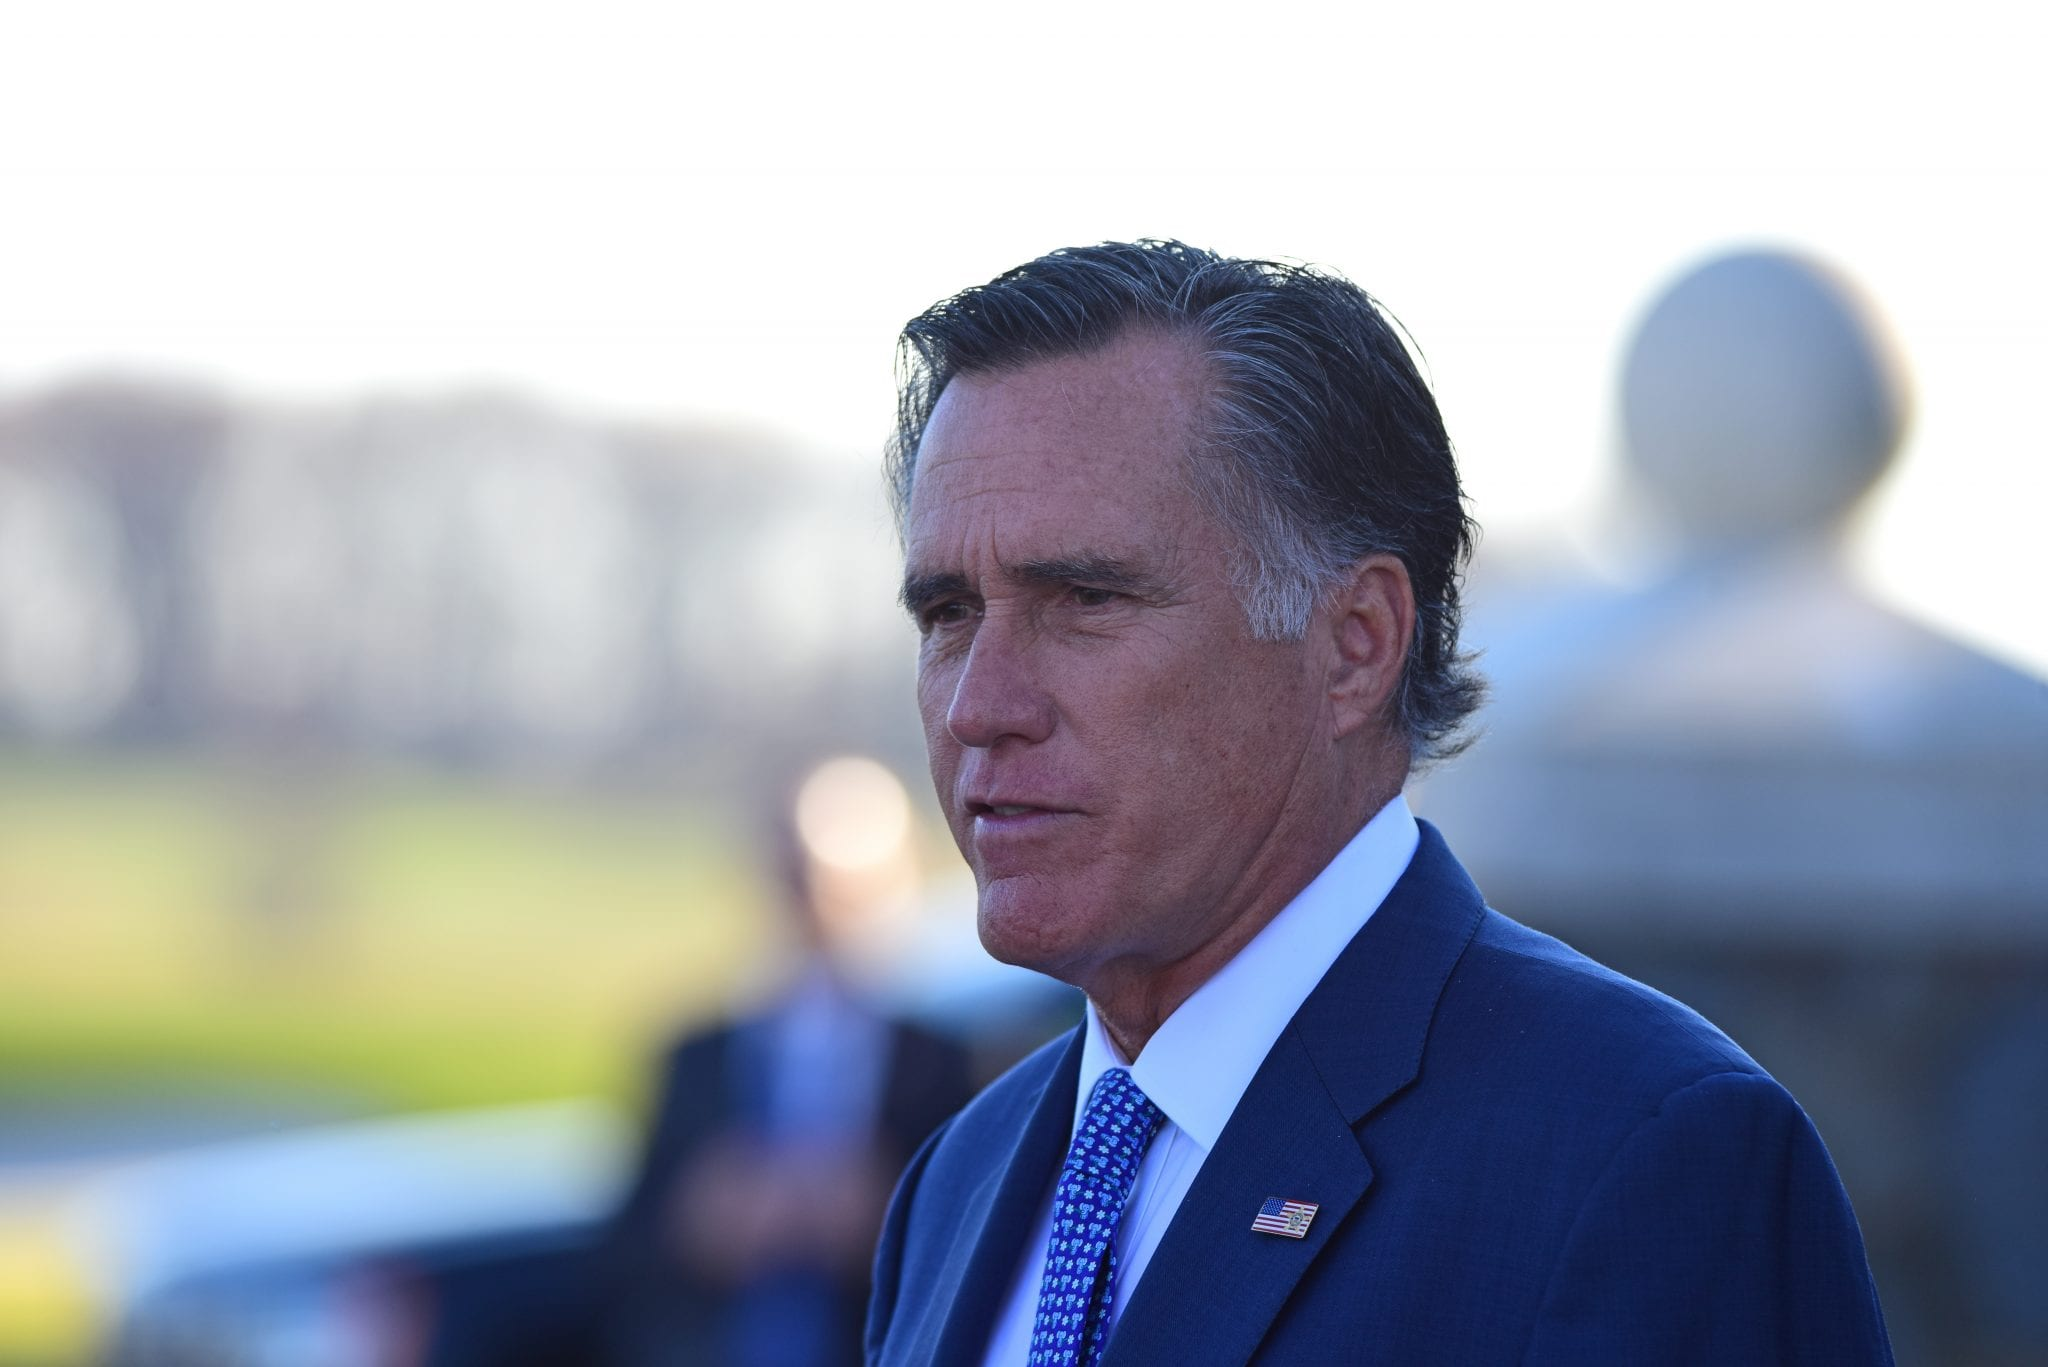 Mitt Romney Implodes After Outing of Secret Twitter Persona | The American Spectator | Politics Is Too Important To Be Taken Seriously.